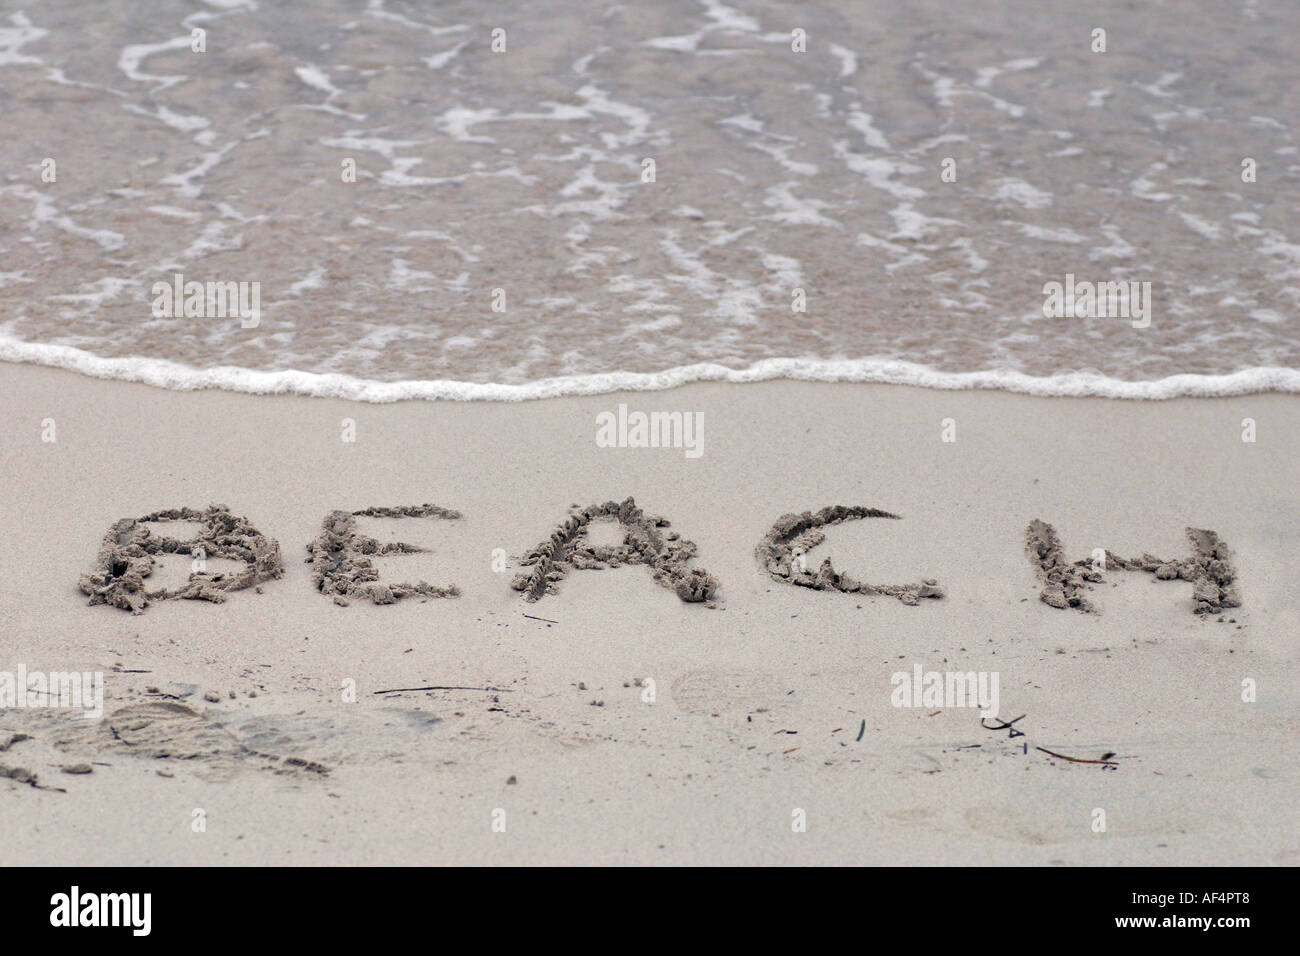 The word BEACH is written in the sand by the sea - Stock Image